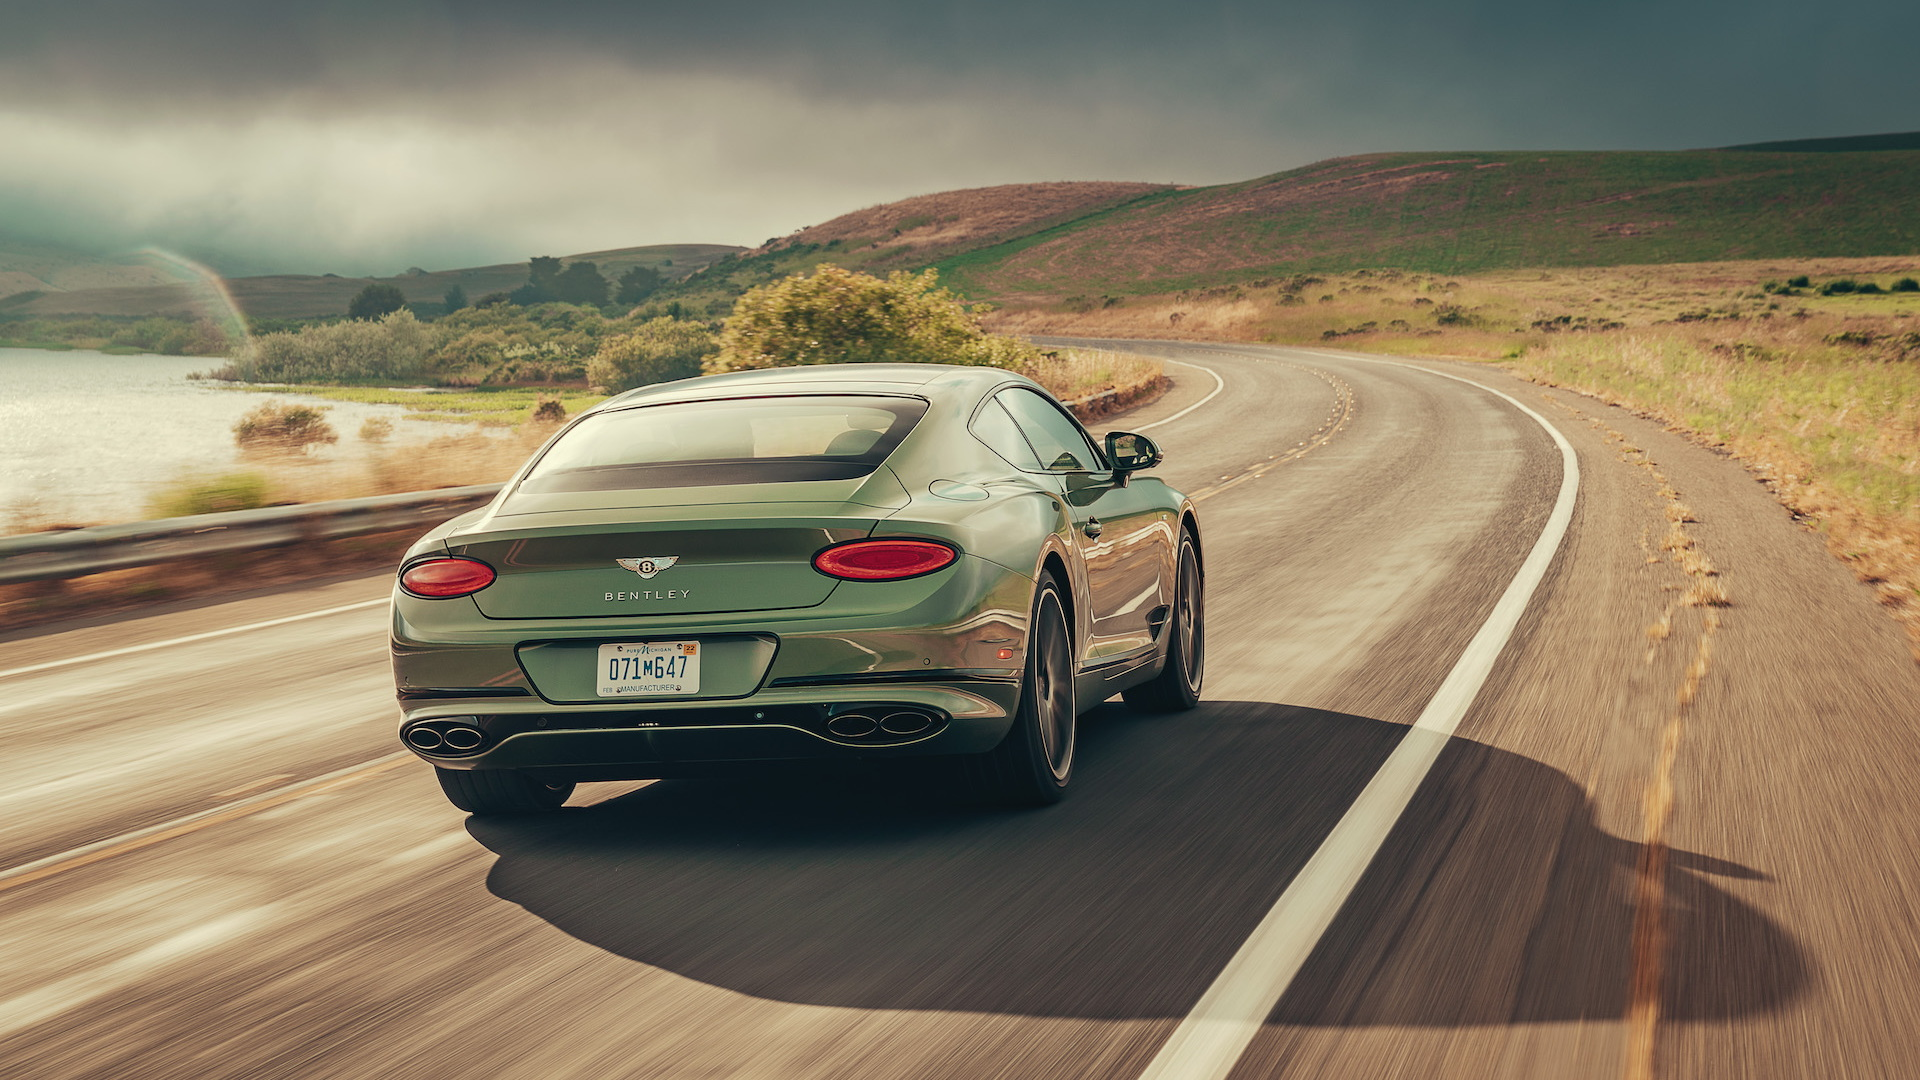 First Drive Review Feeling Good In The 2020 Bentley Continental Gt V8